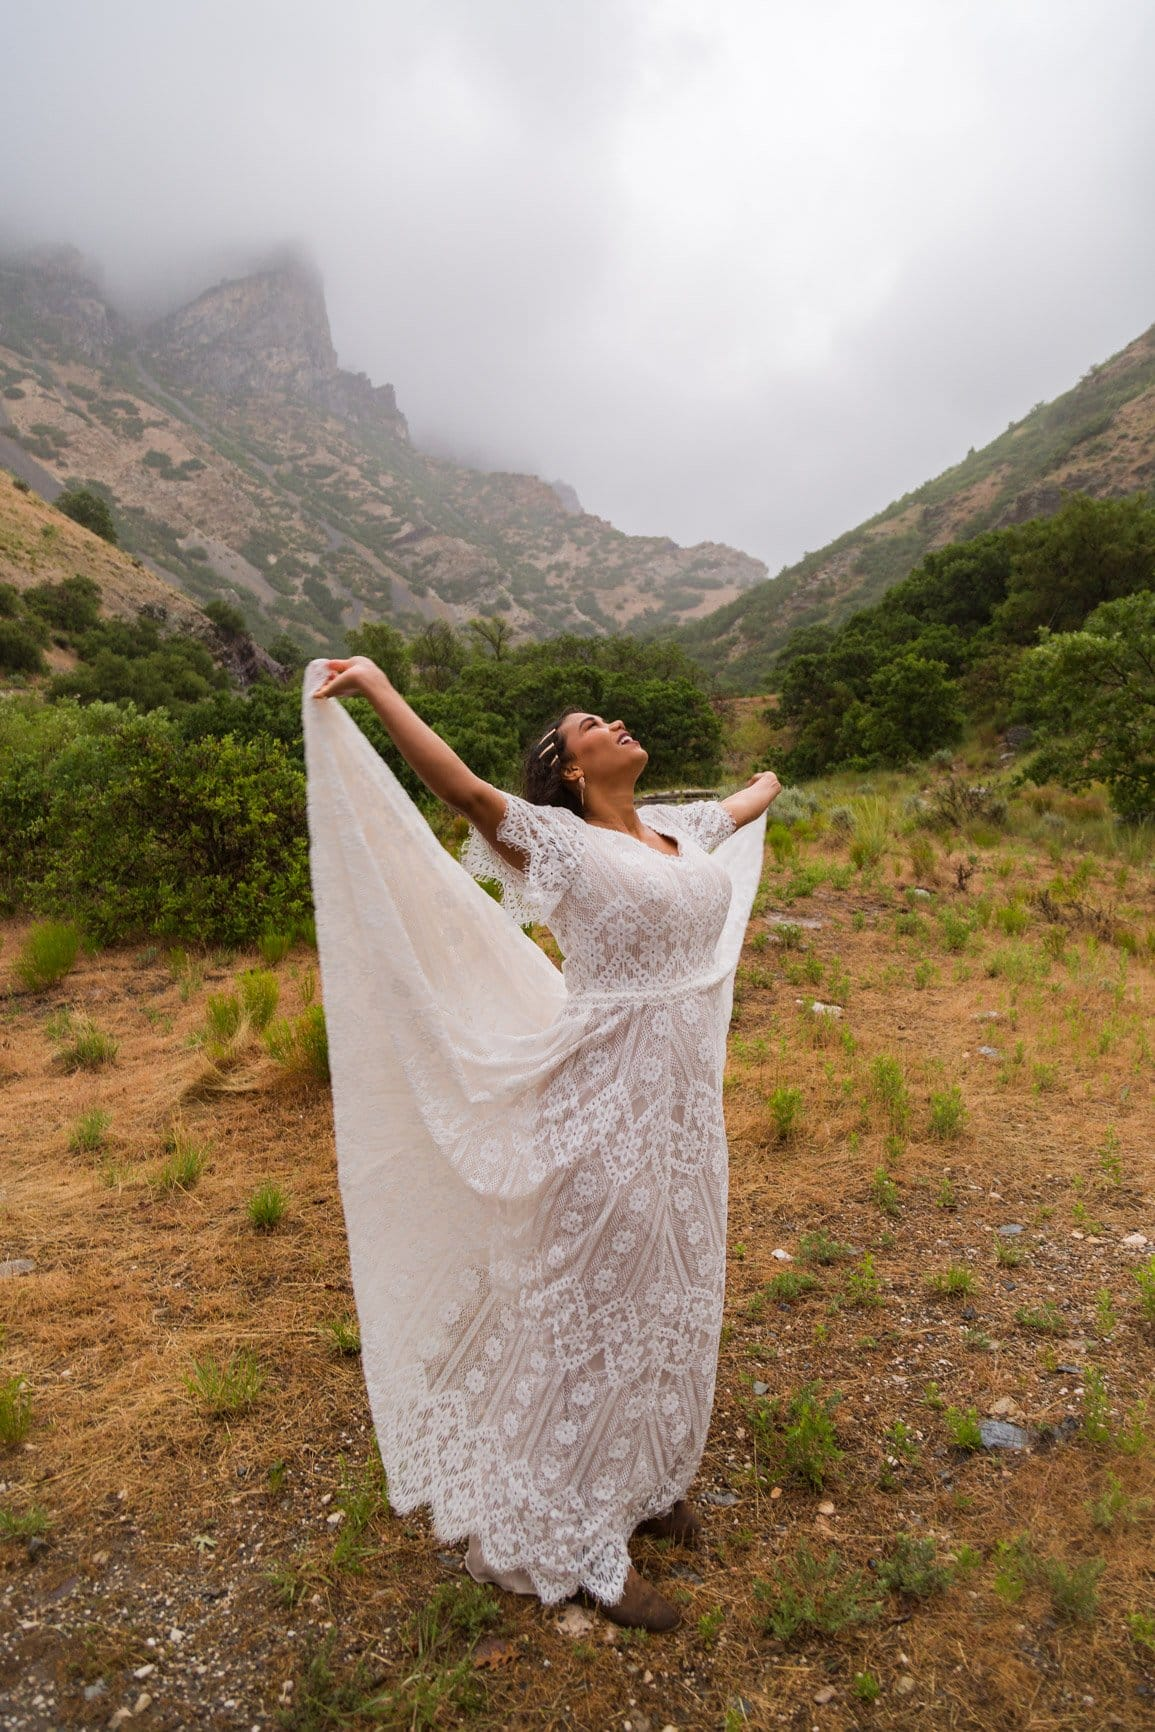 women dances in the rain among the foggy mountain peaks